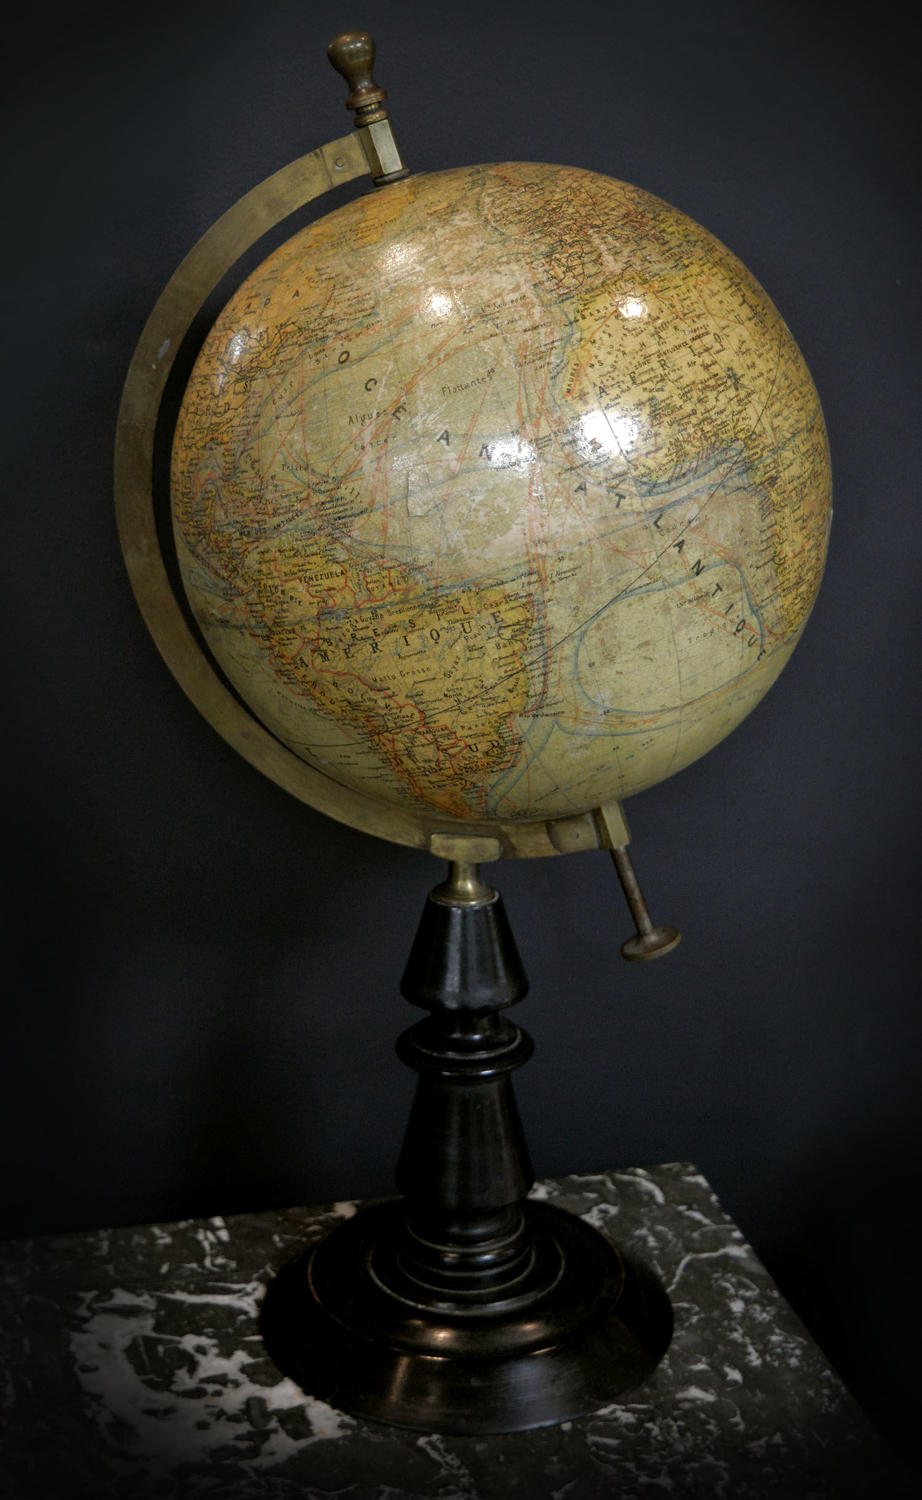 Antique French Terrestrial Globe c1900-10